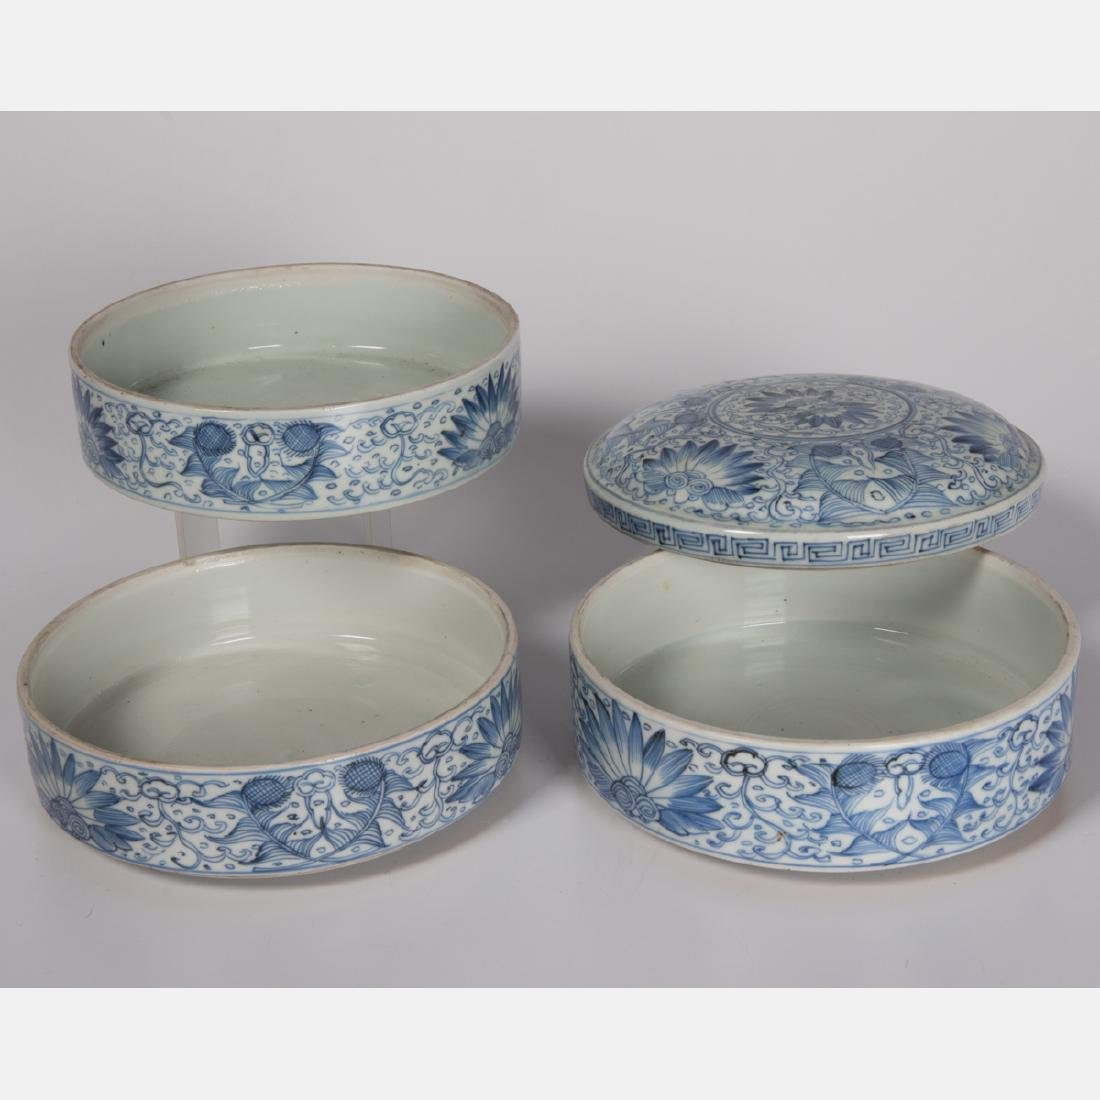 A Group of Three Chinese Blue and White Porcelain and - 4